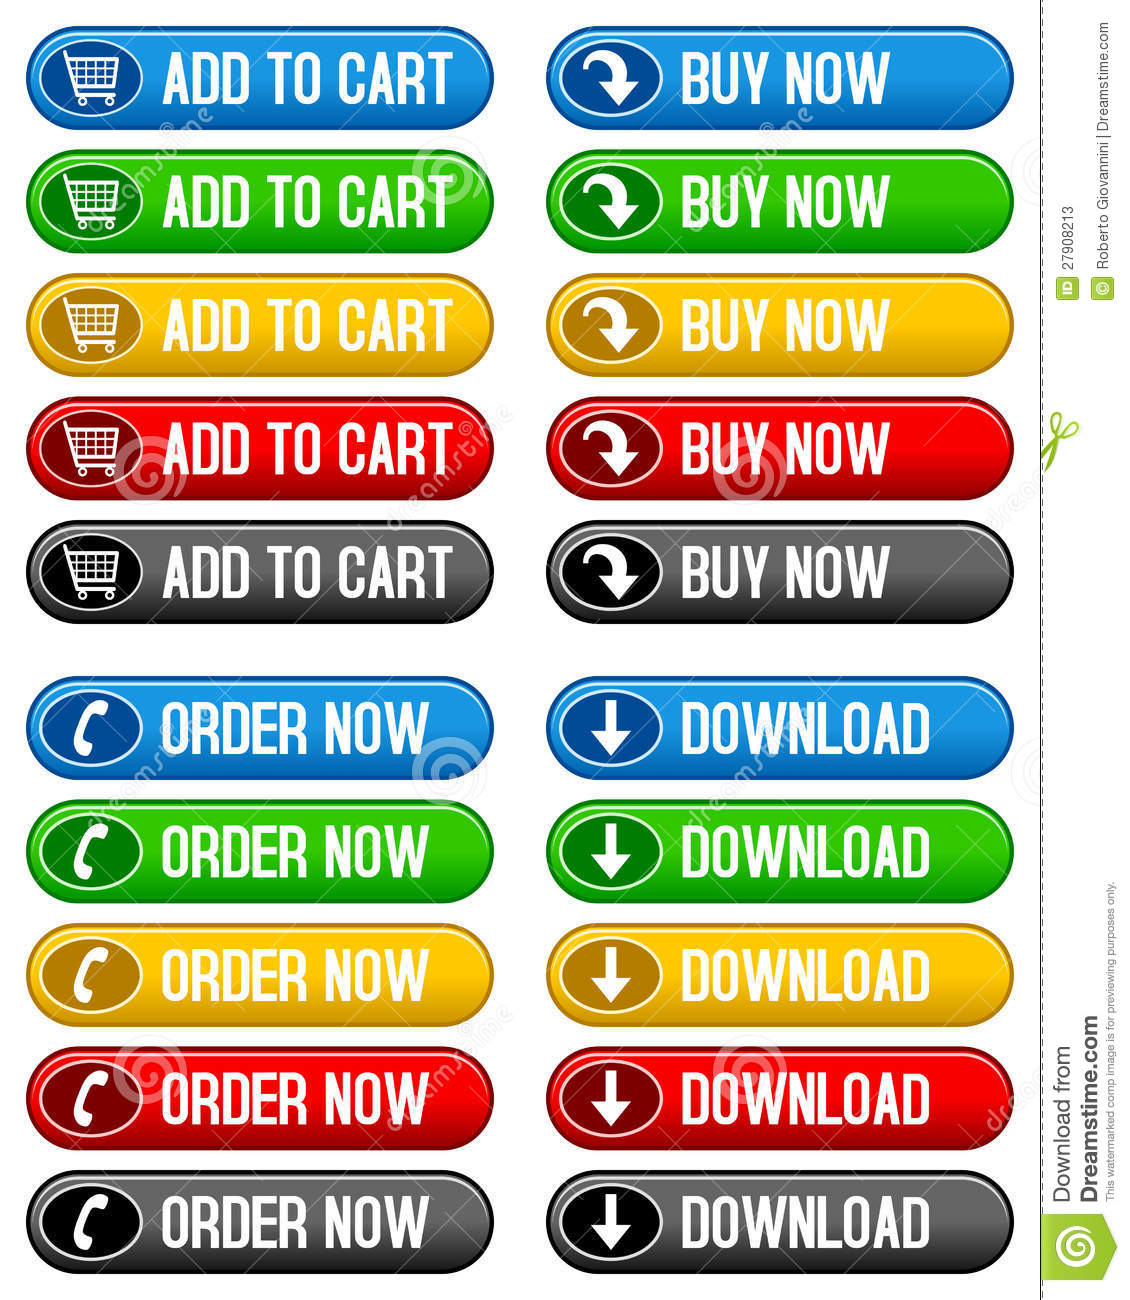 Buy It Now: Add To Cart Buy Now Buttons Stock Vector